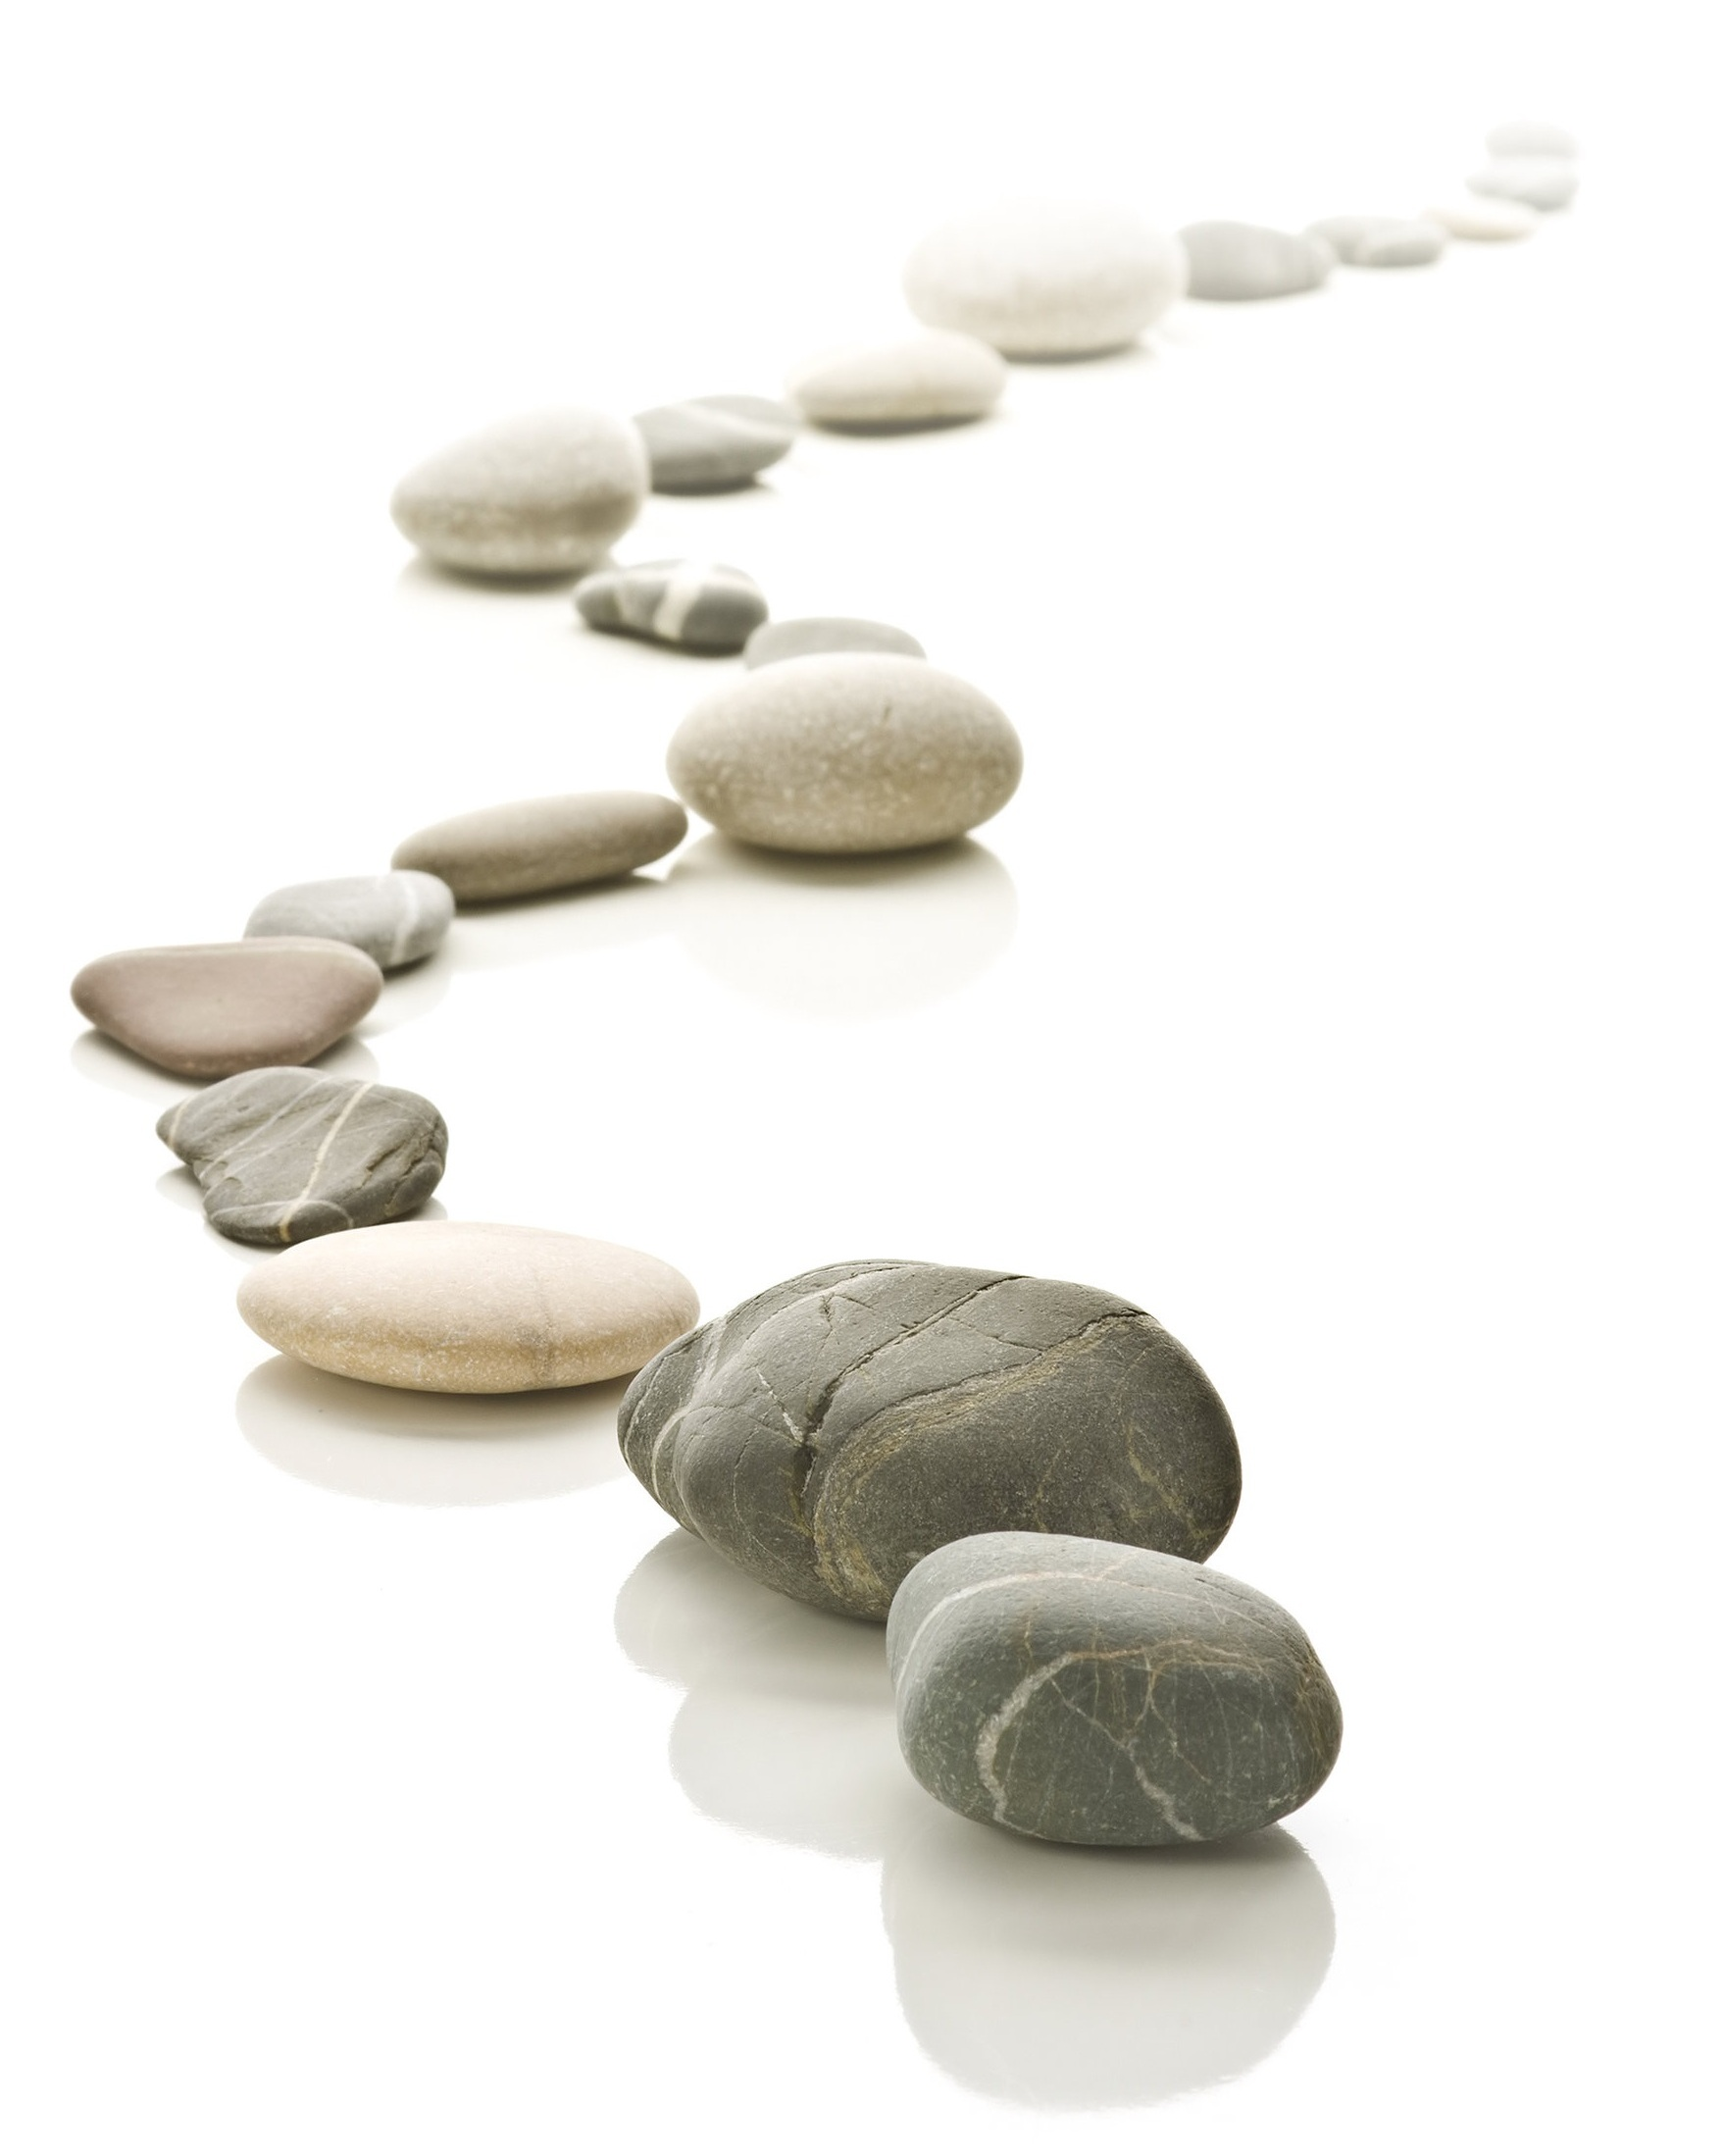 Rock path based off a balanced life brand and motto